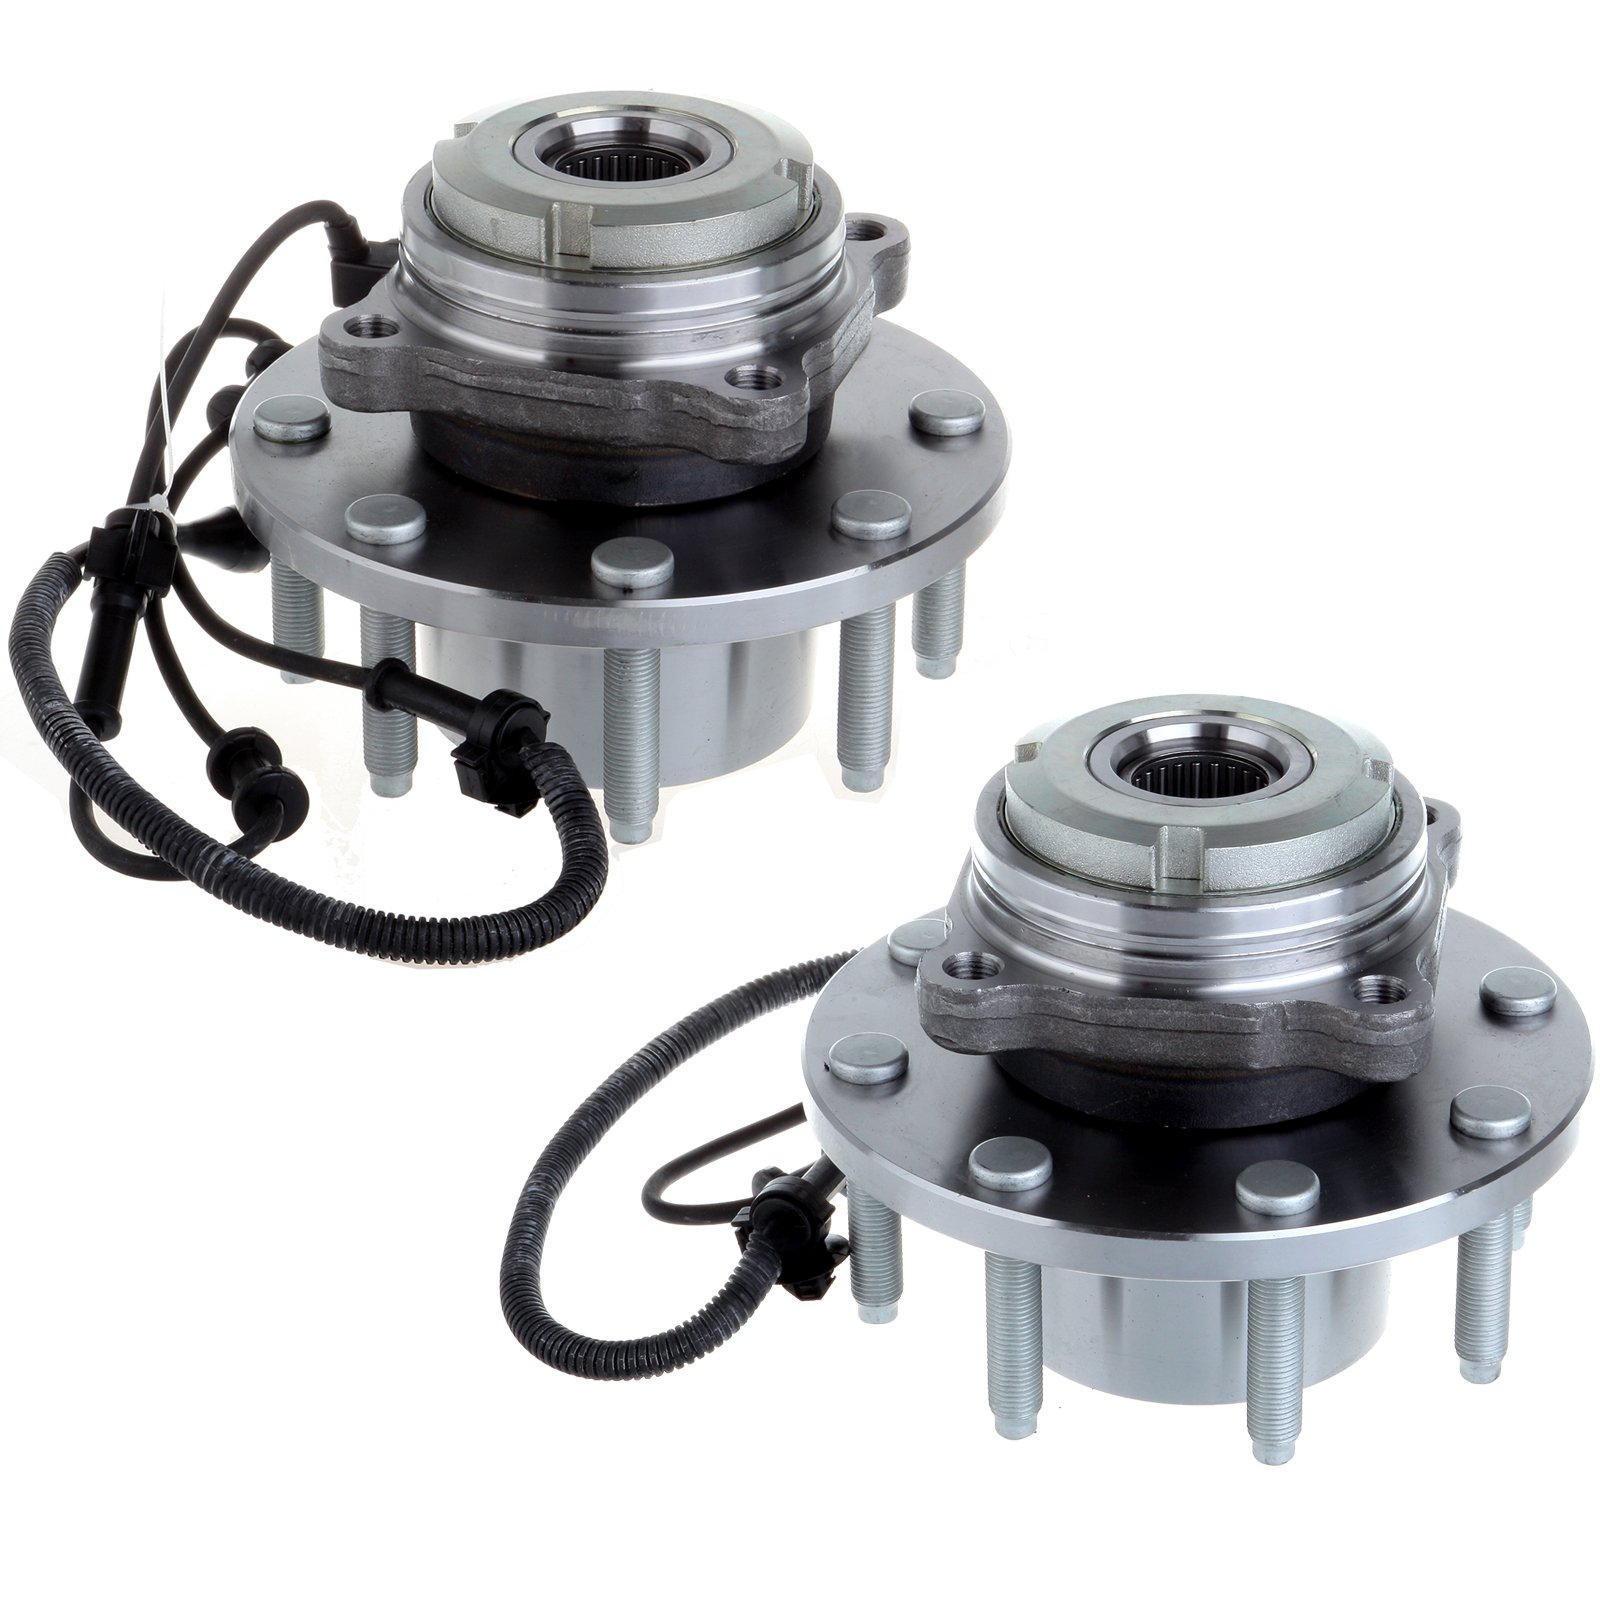 ECCPP 2 Front LH Or RH Wheel Hub Bearing Assembly For Excursion F250 Super Duty F350 Super Duty 4WD 4 X 4